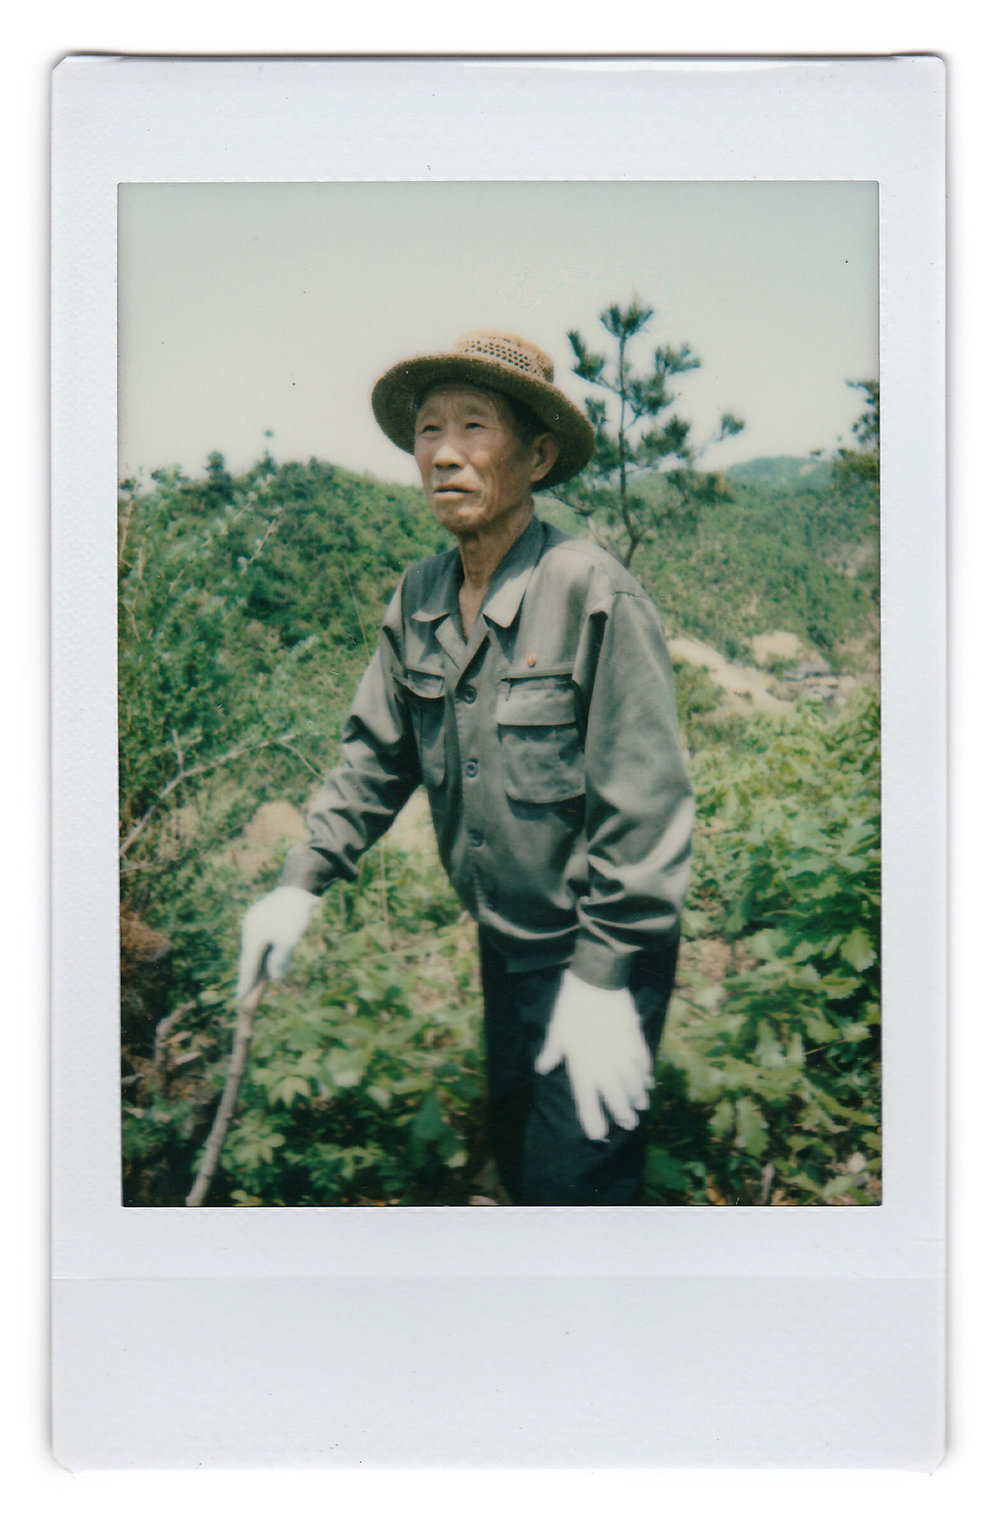 In this May 8, 2017, photo made with an instant camera, village elder Kim Ri Jun, 77, poses for a portrait on Ryongyon-ri hill in Kujang county, North Korea. Kim was 13-years old when the Korean War broke out. Kim and his friend have been helping to move and bury soldier remains believed to be that of American soldiers up this hill, as the area where the remains were once buried is now constructed into a power dam. When asked what's important to them, North Koreans might talk about working hard, or doing well at sports, or having a big family, but leader Kim Jong Un is never far from the conversation. (AP Photo/Wong Maye-E)